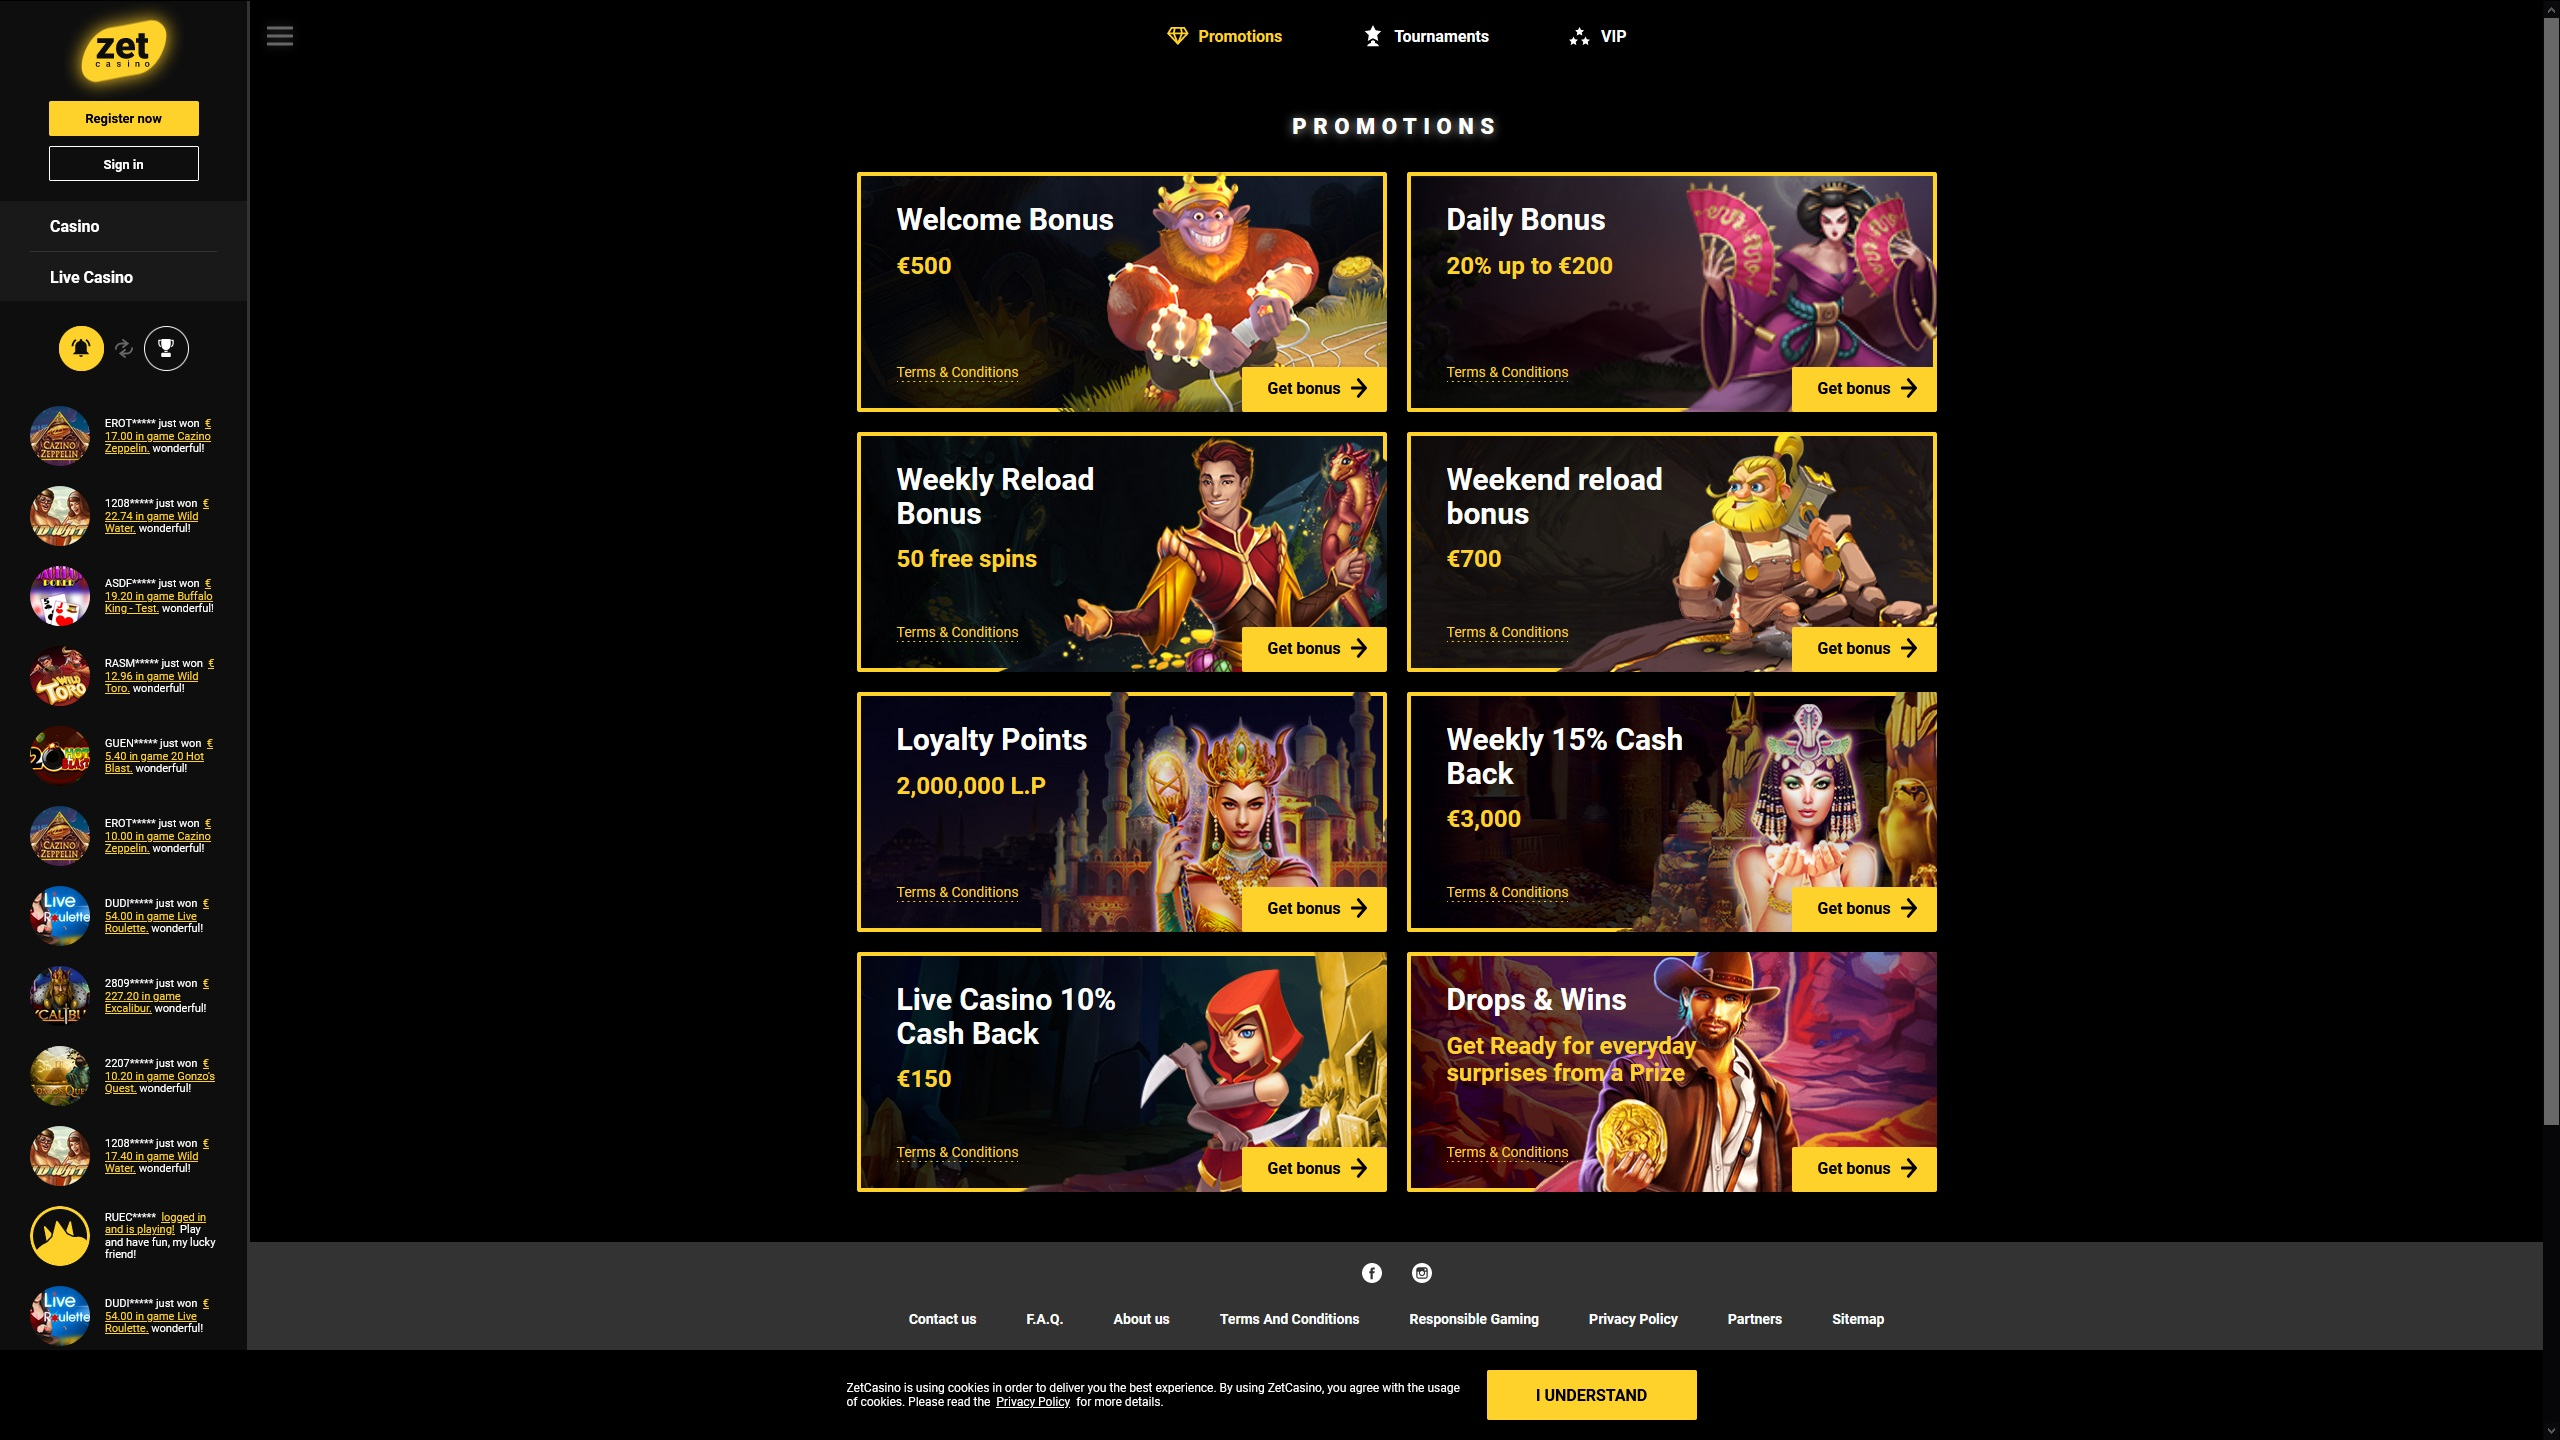 Zet Casino Offers Many Special Promotions